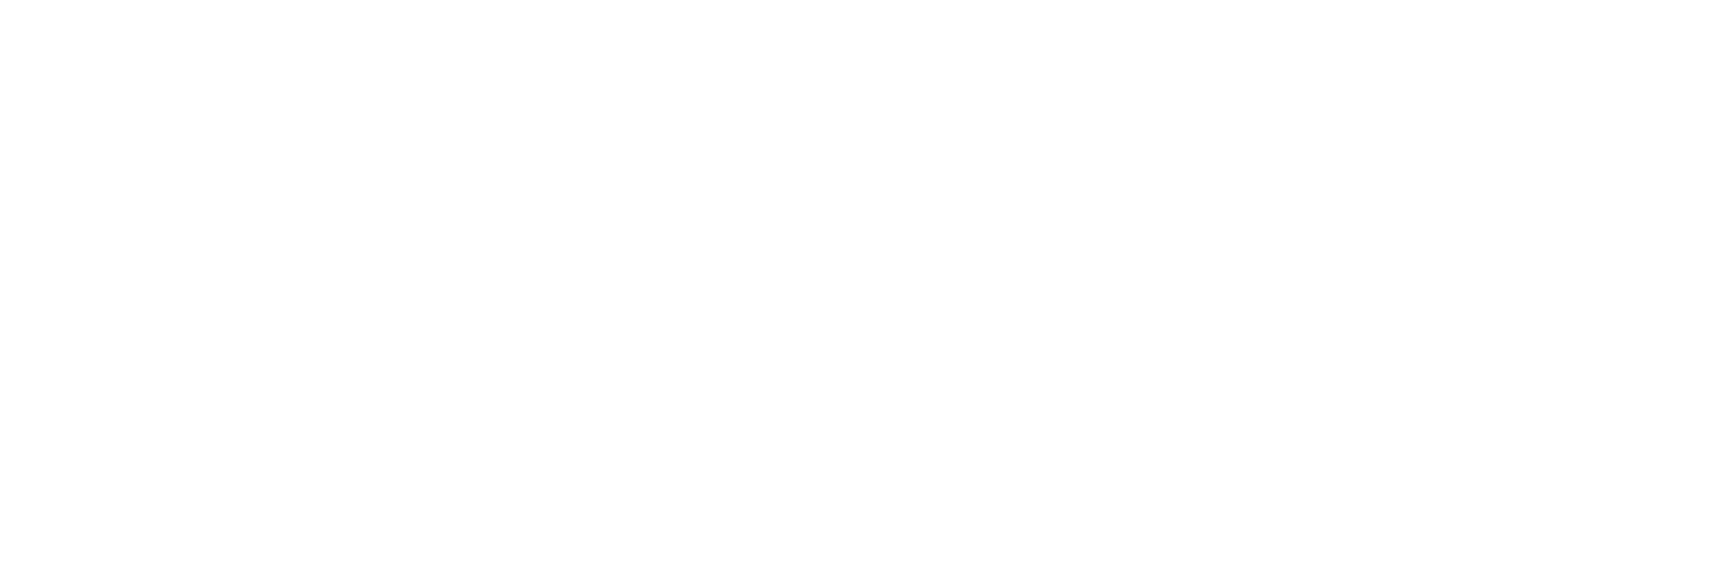 Harford Community Action Agency - Poverty Fighting Network